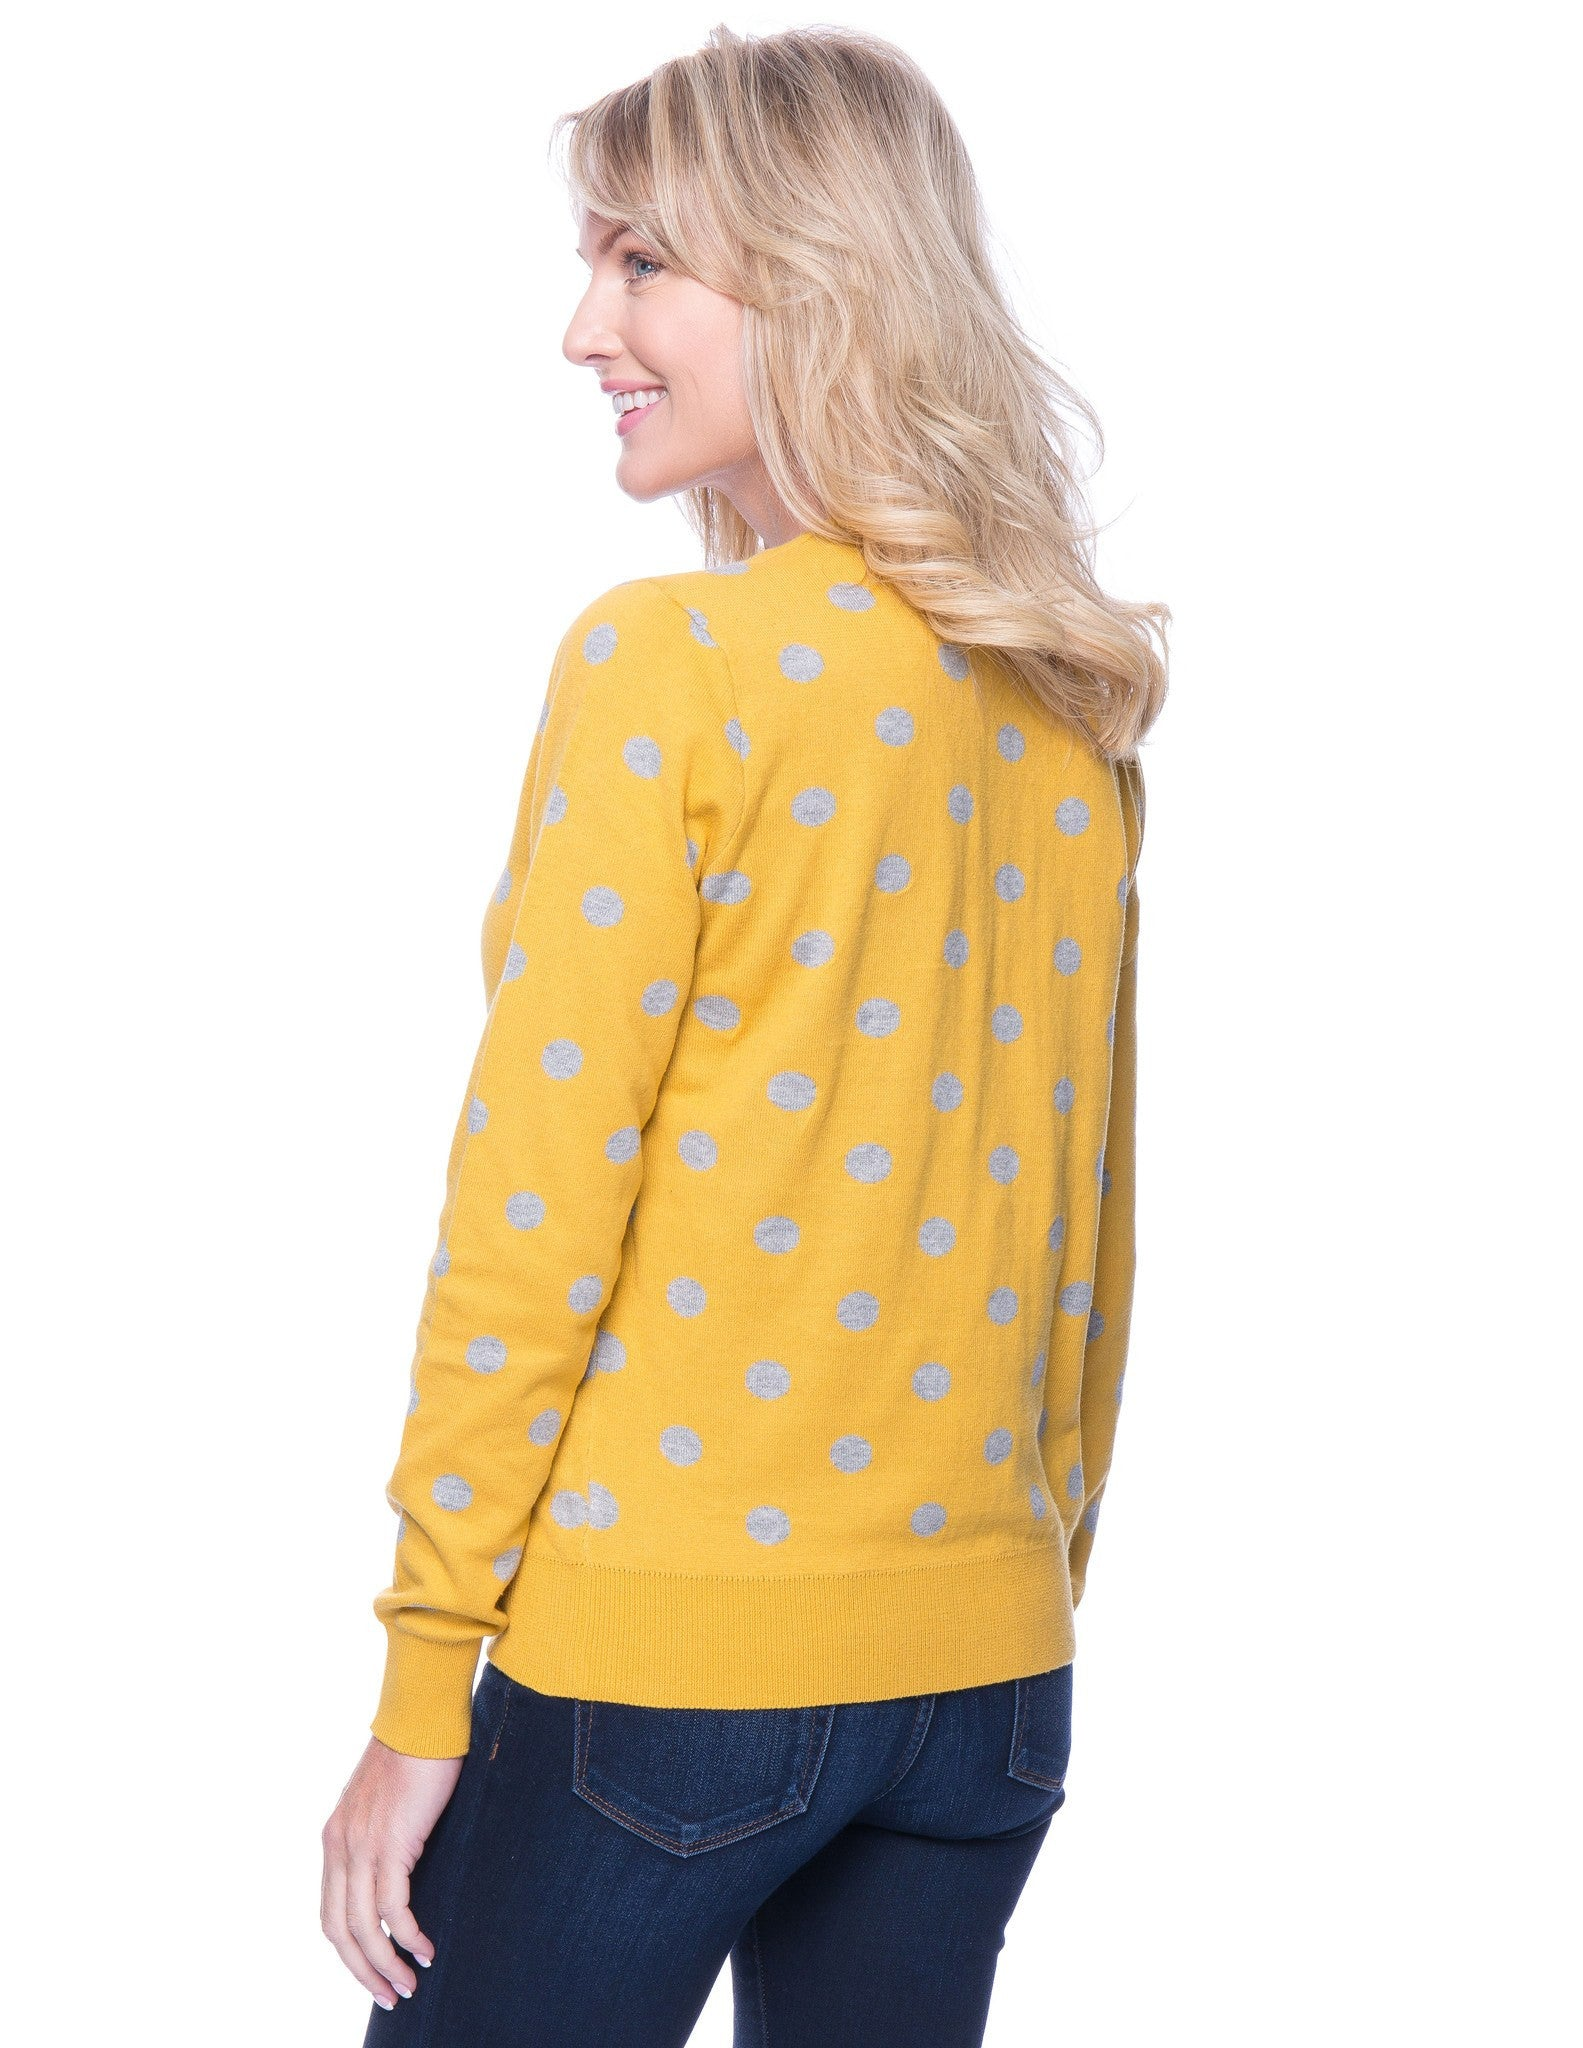 Polka Dots Mustard/Heather Grey